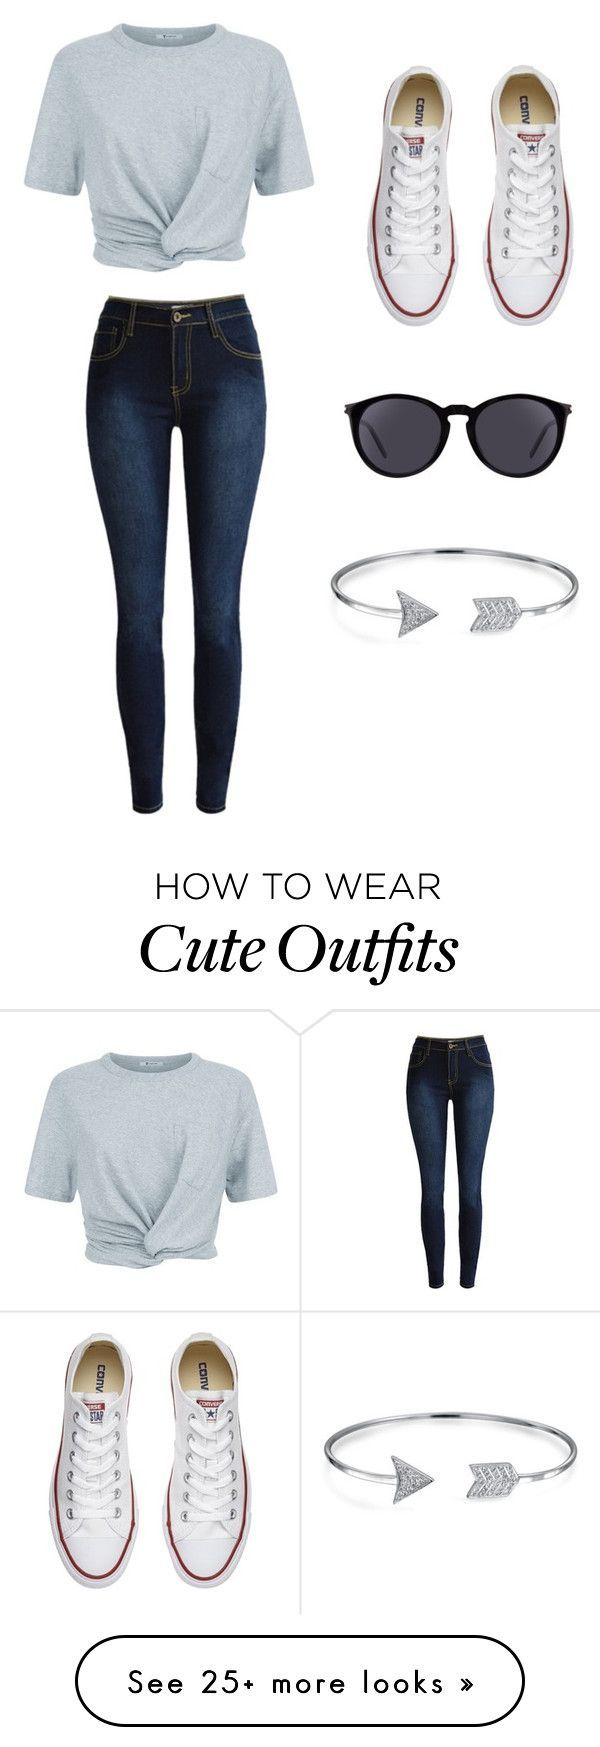 Cute outfits by maizyp on polyvore featuring t by alexander wang